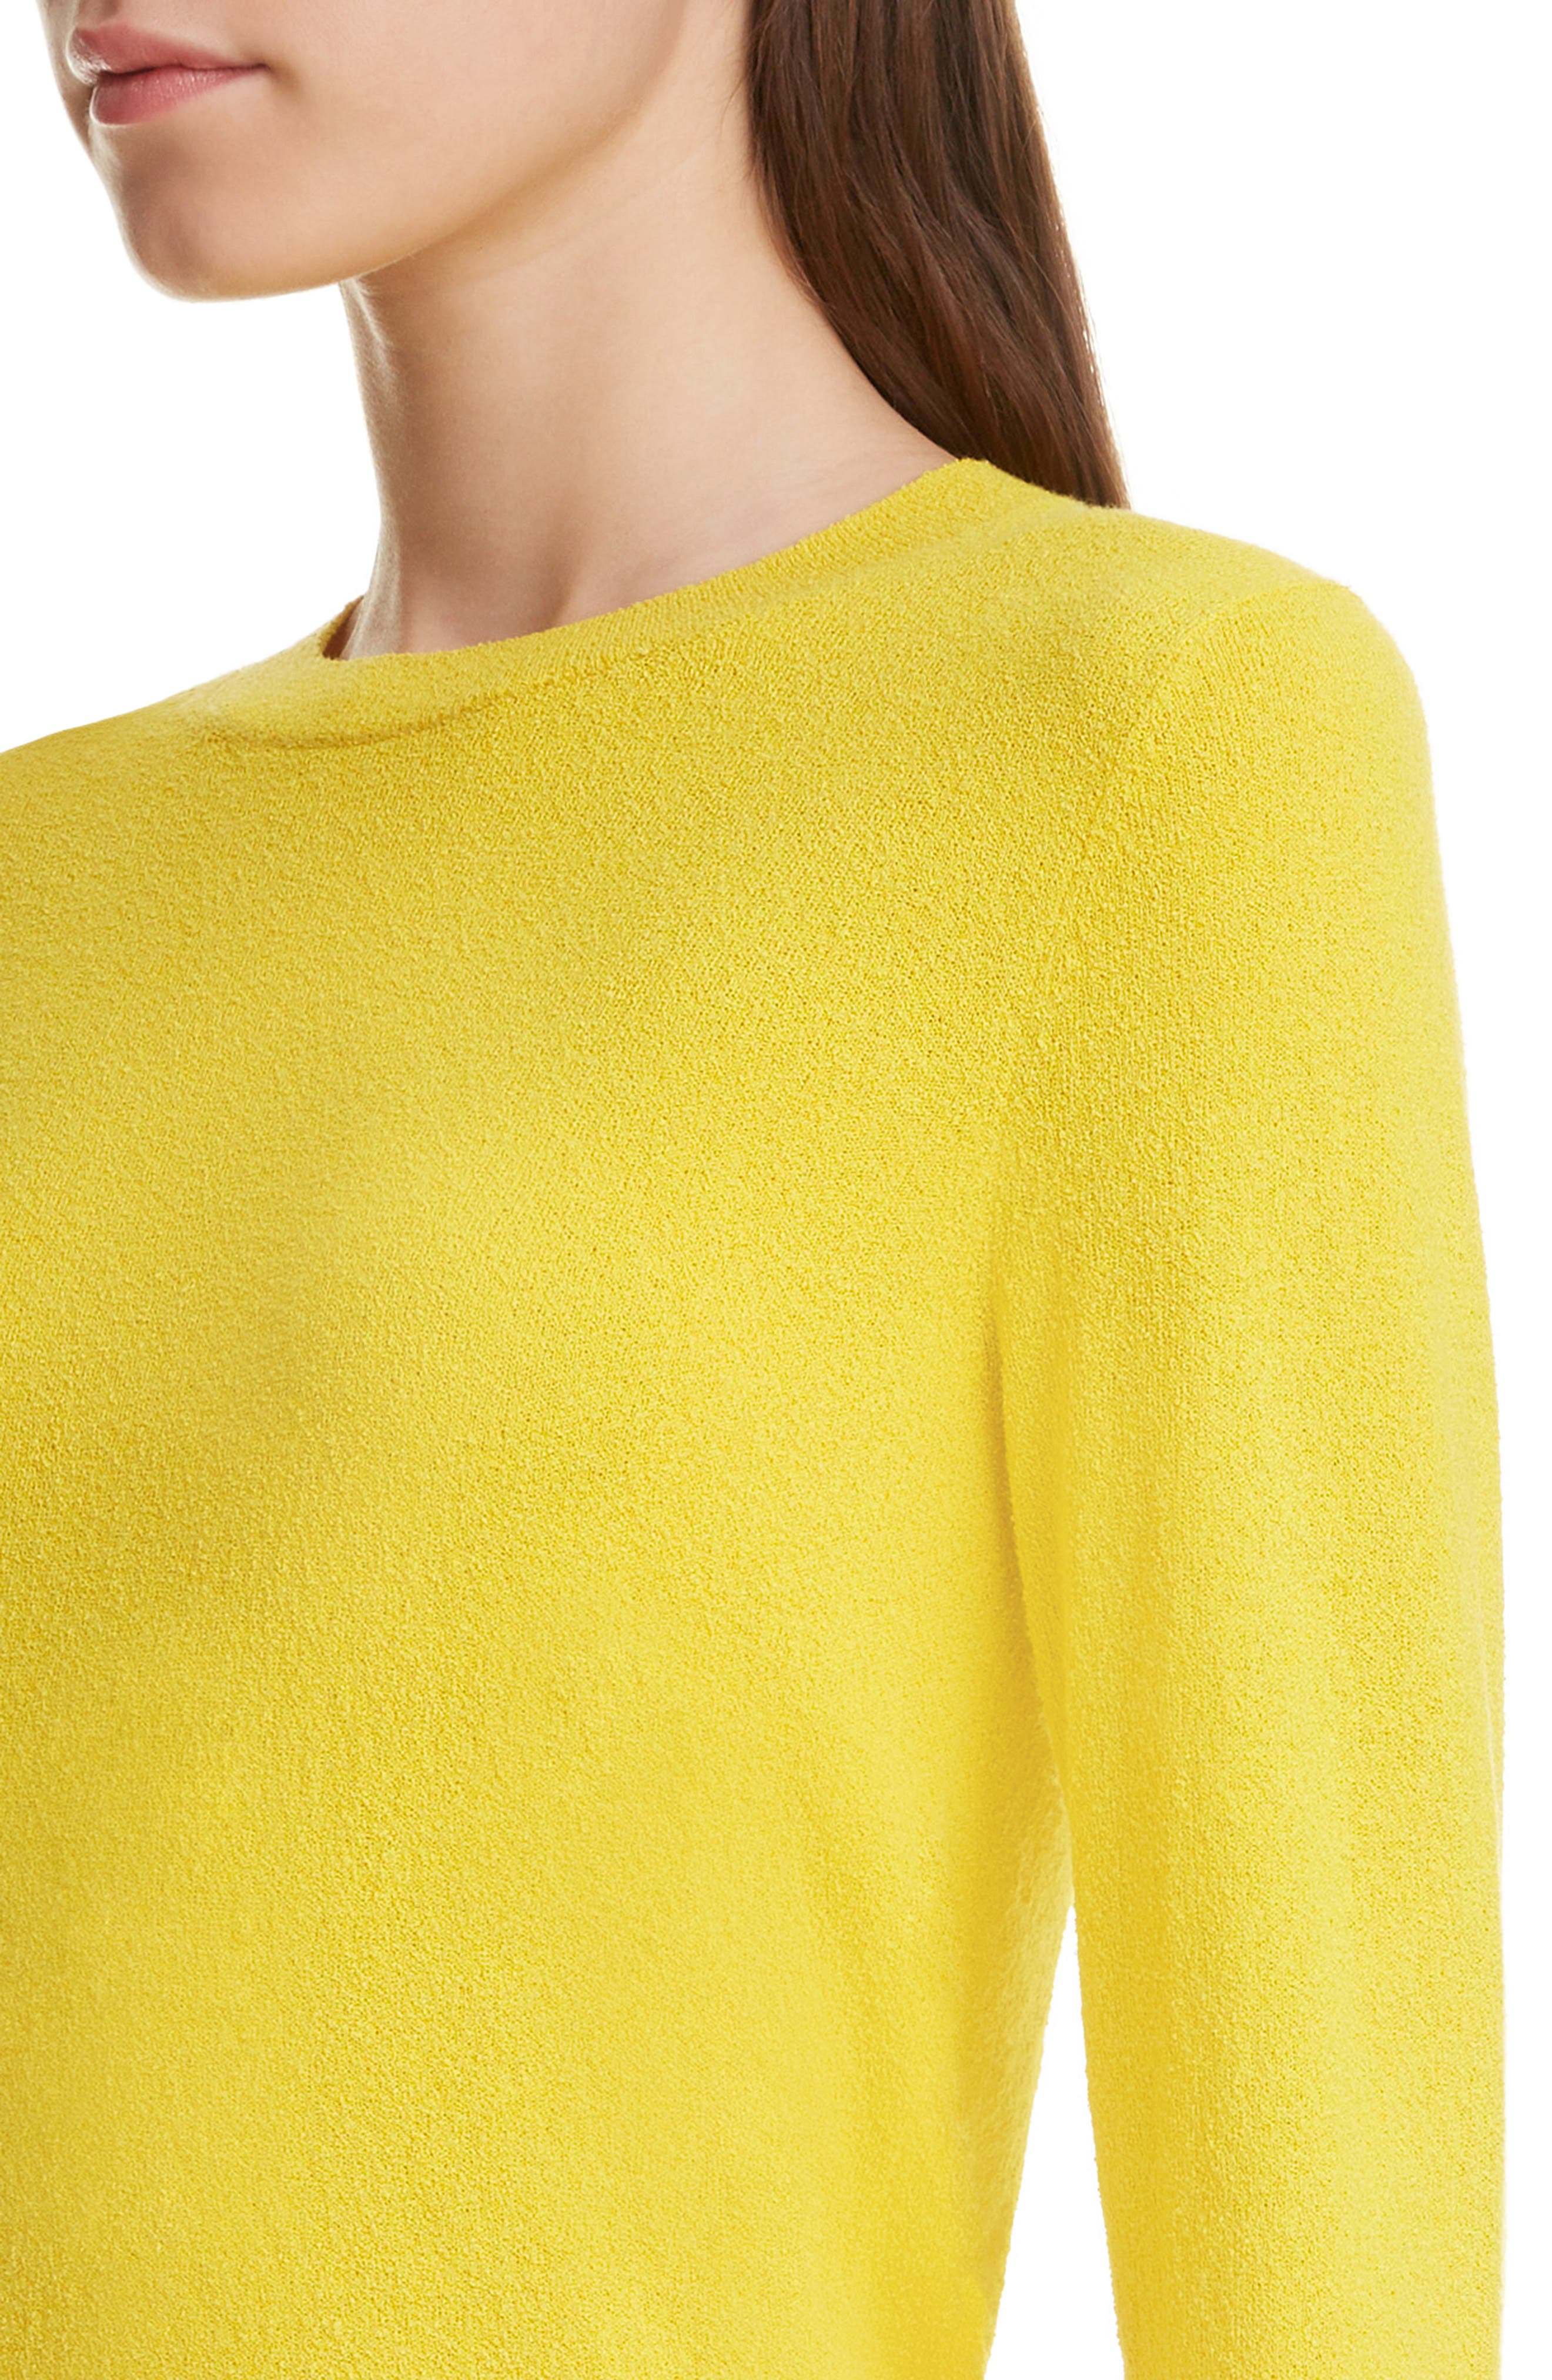 DRIES VAN NOTEN, Nadine Sweater, Alternate thumbnail 4, color, YELLOW